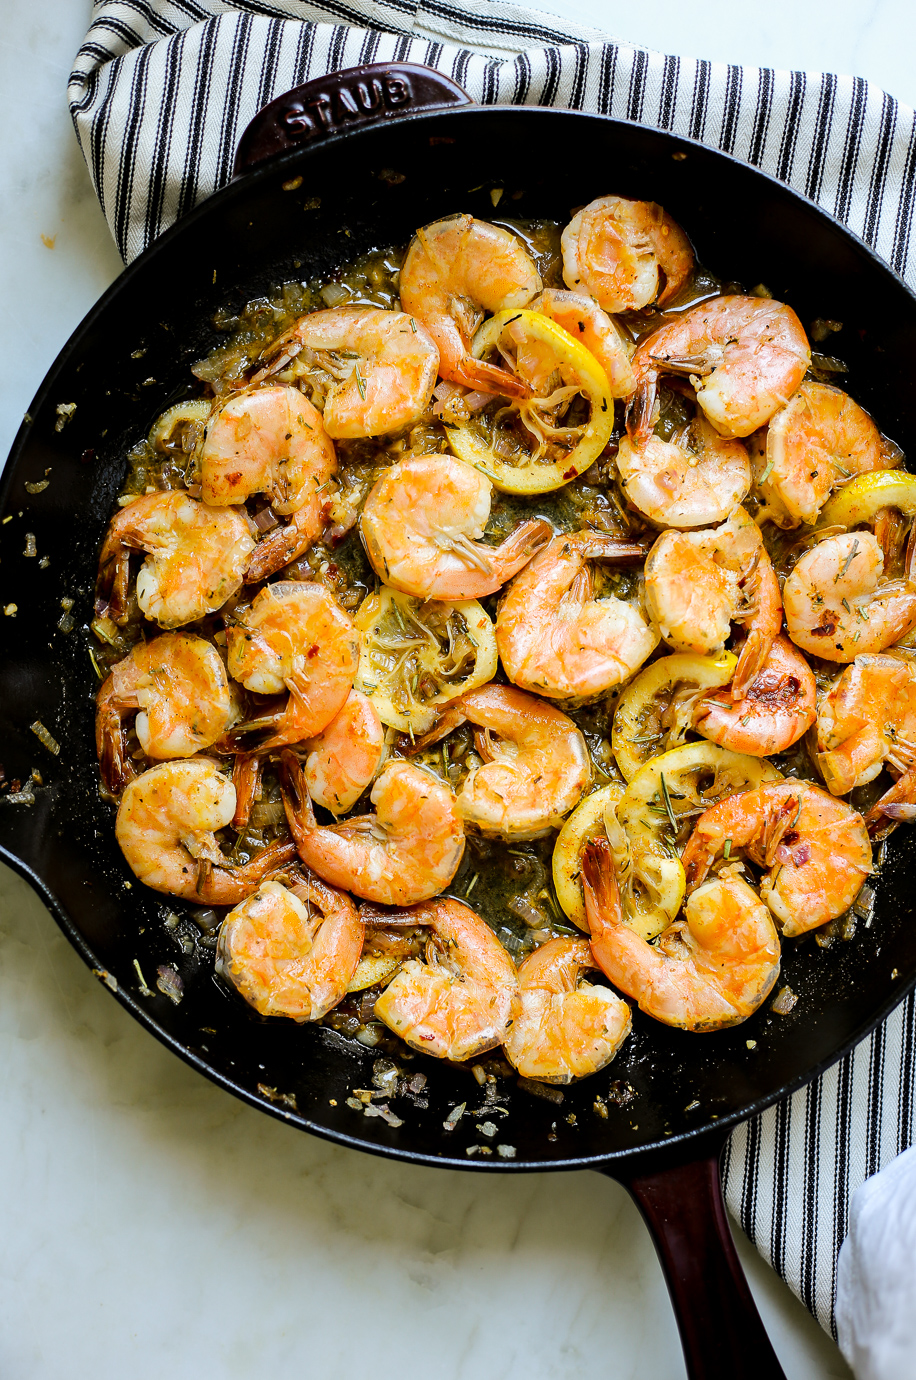 New Orleans-Style Barbecued Shrimp